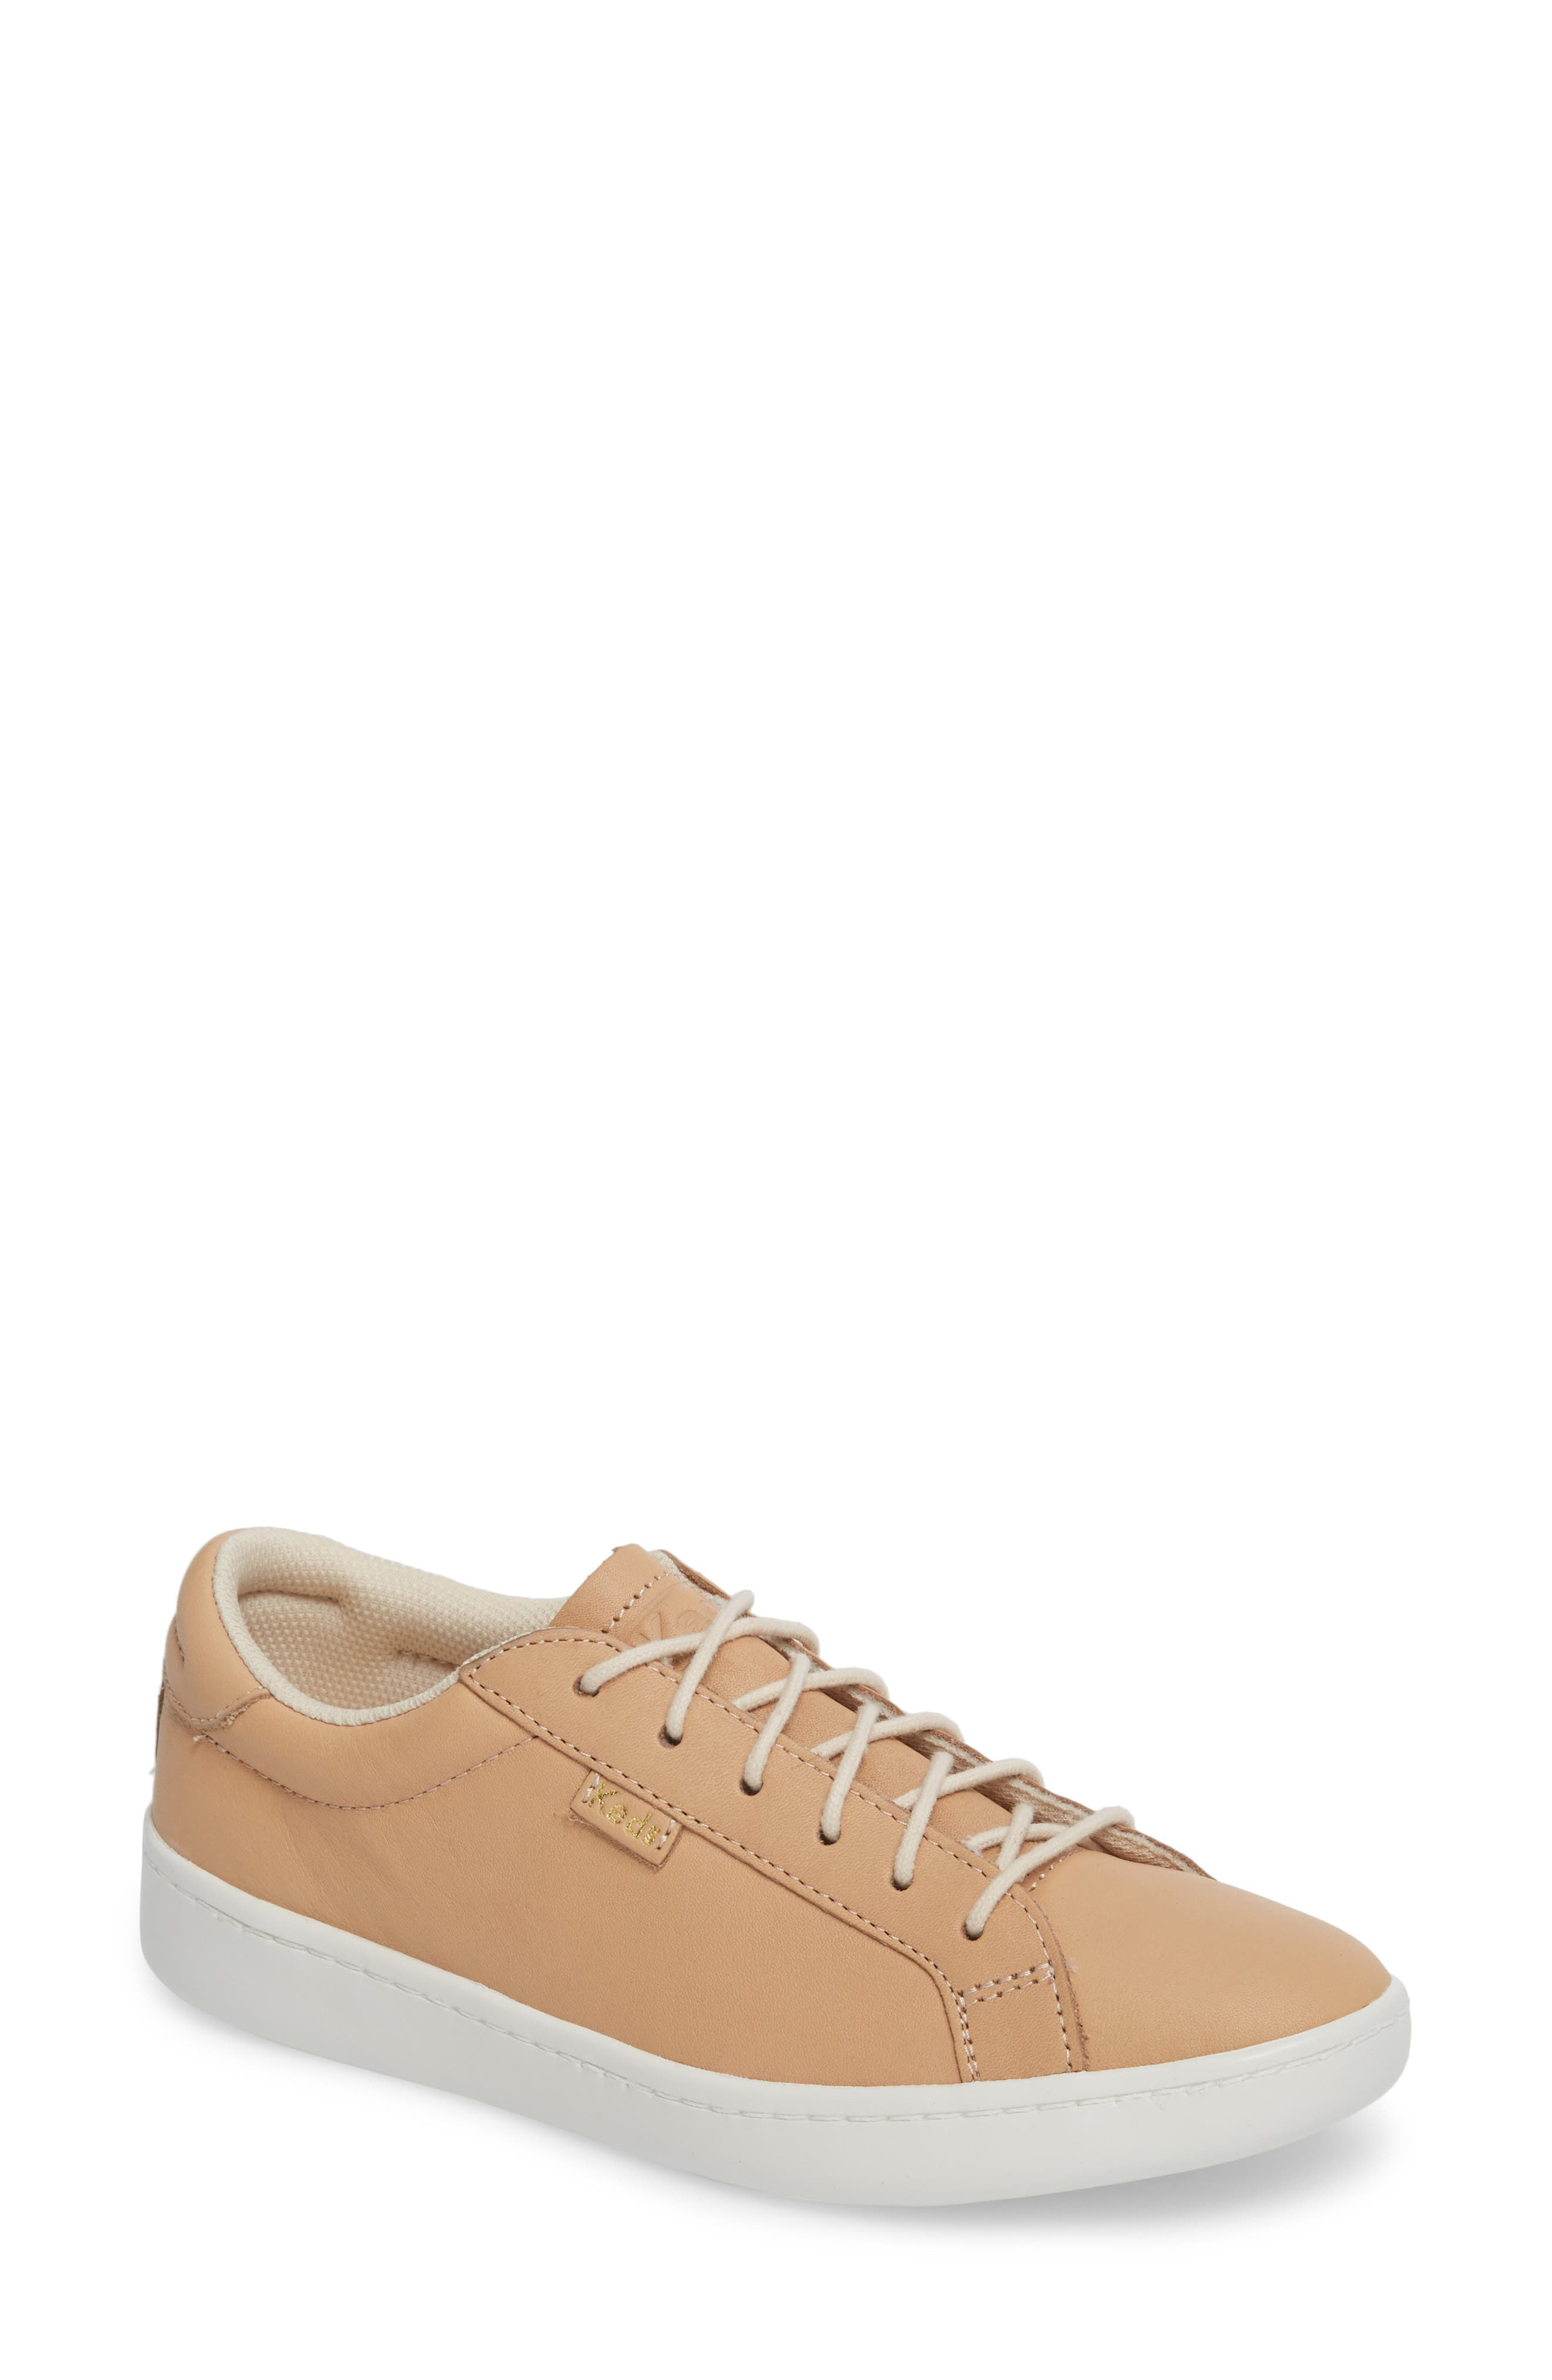 Ace Leather Sneaker,                             Main thumbnail 1, color,